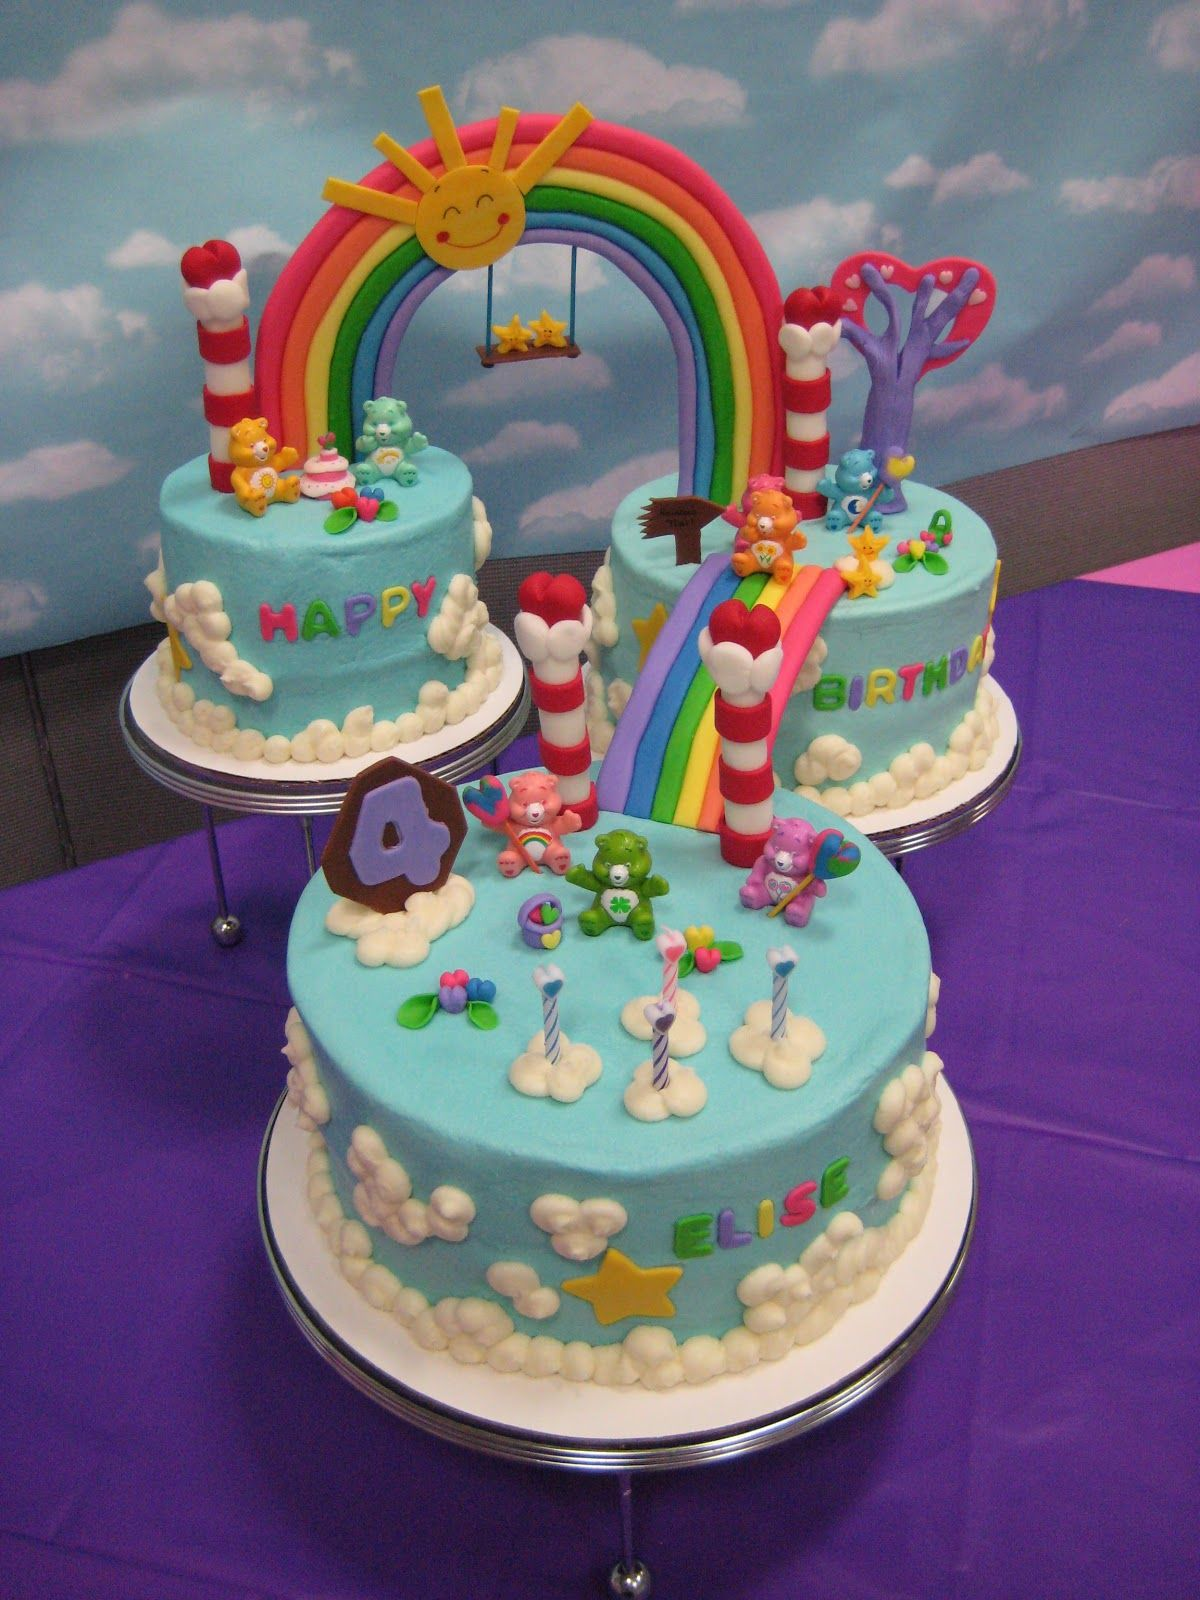 Care Bear Cake With Images Care Bear Cakes Bear Cakes Kids Cake